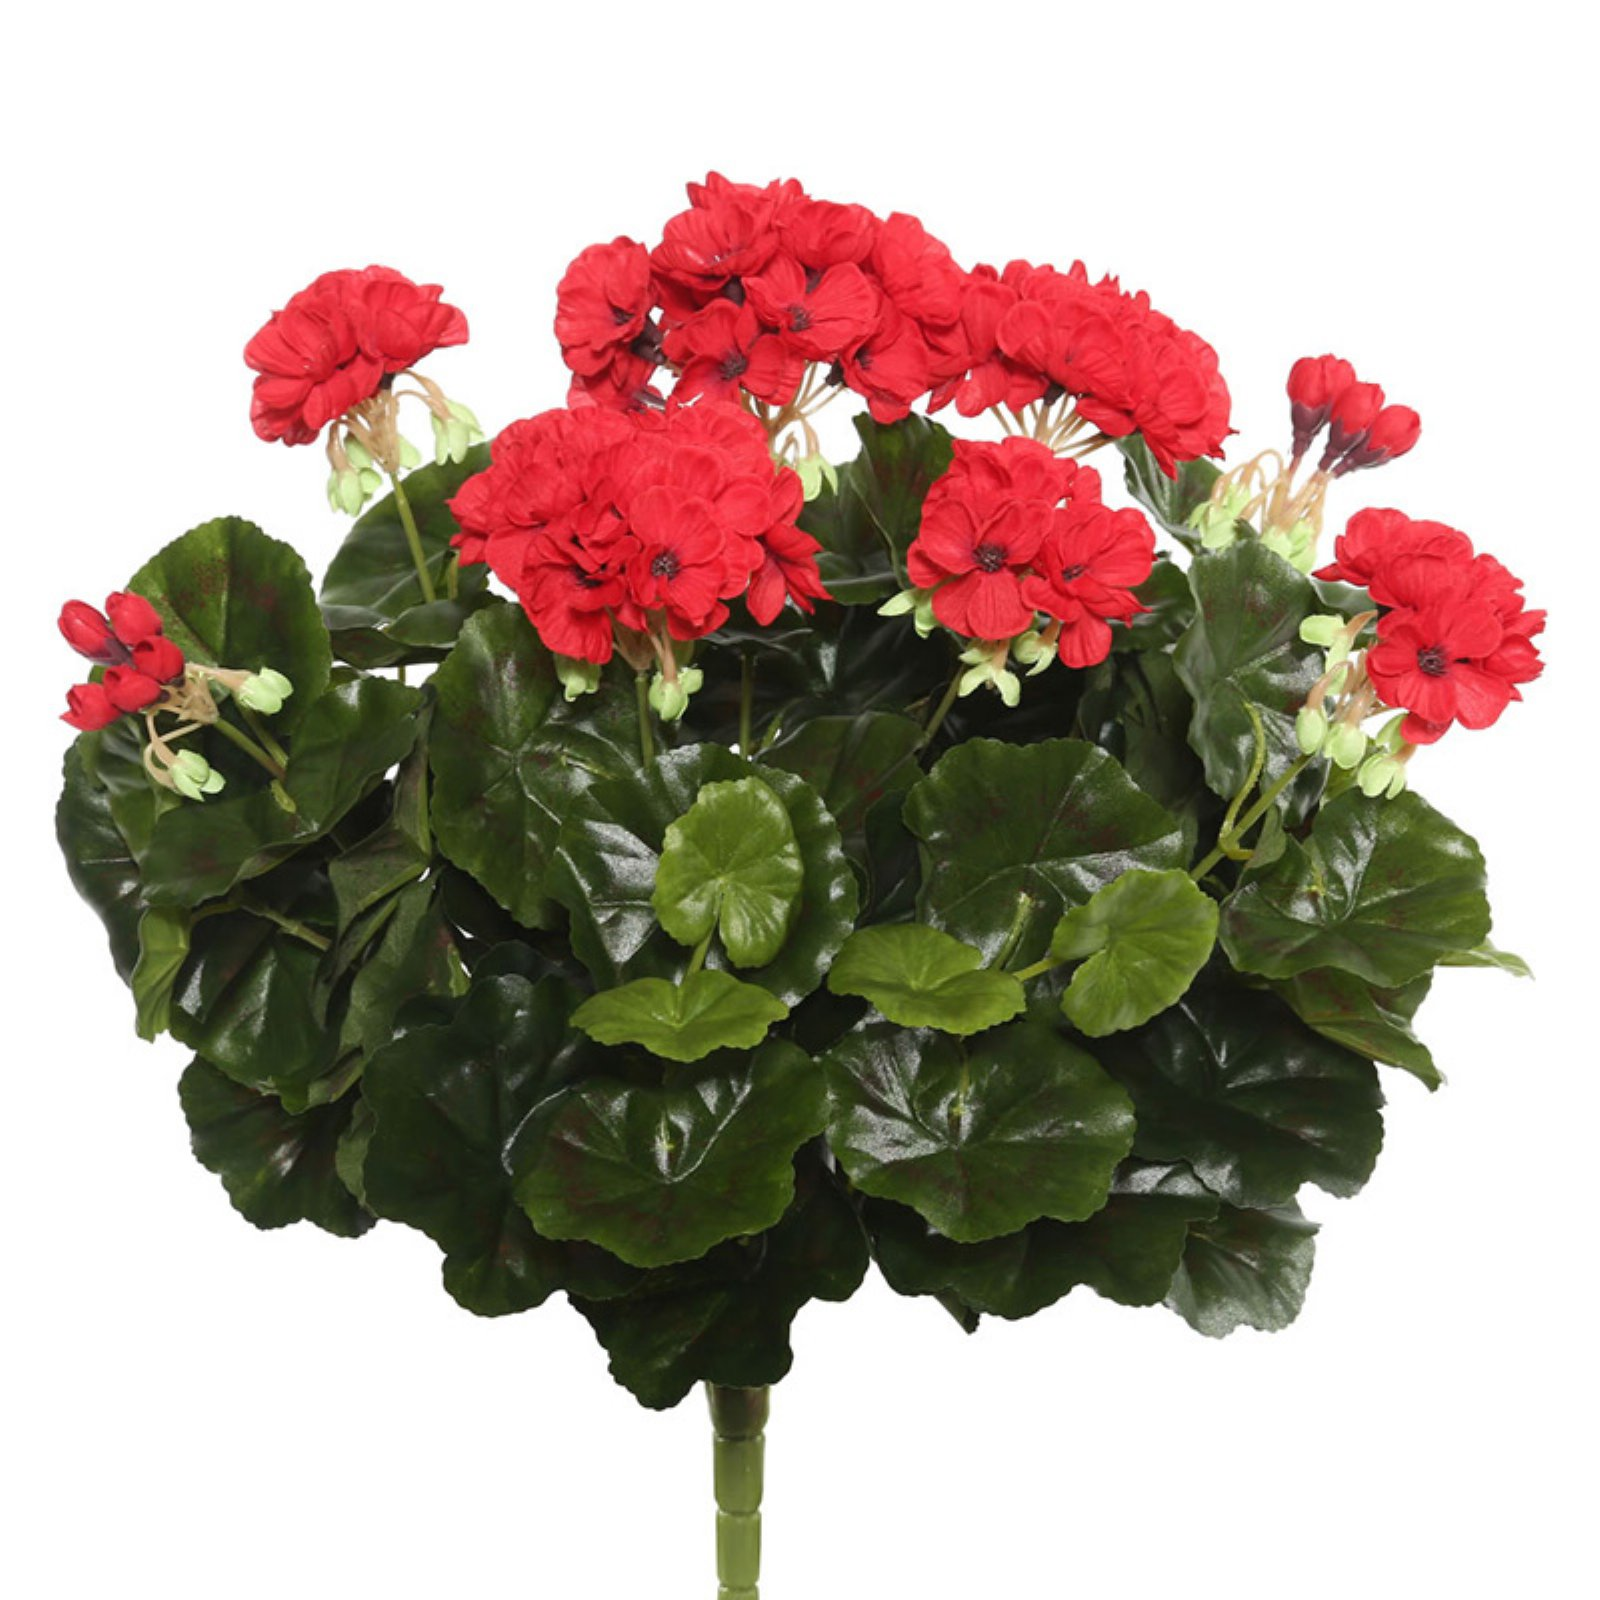 "Vickerman 17.5"" Red Polyester Geranium Bush with 96 Leaves and 115 Flowers and Buds"